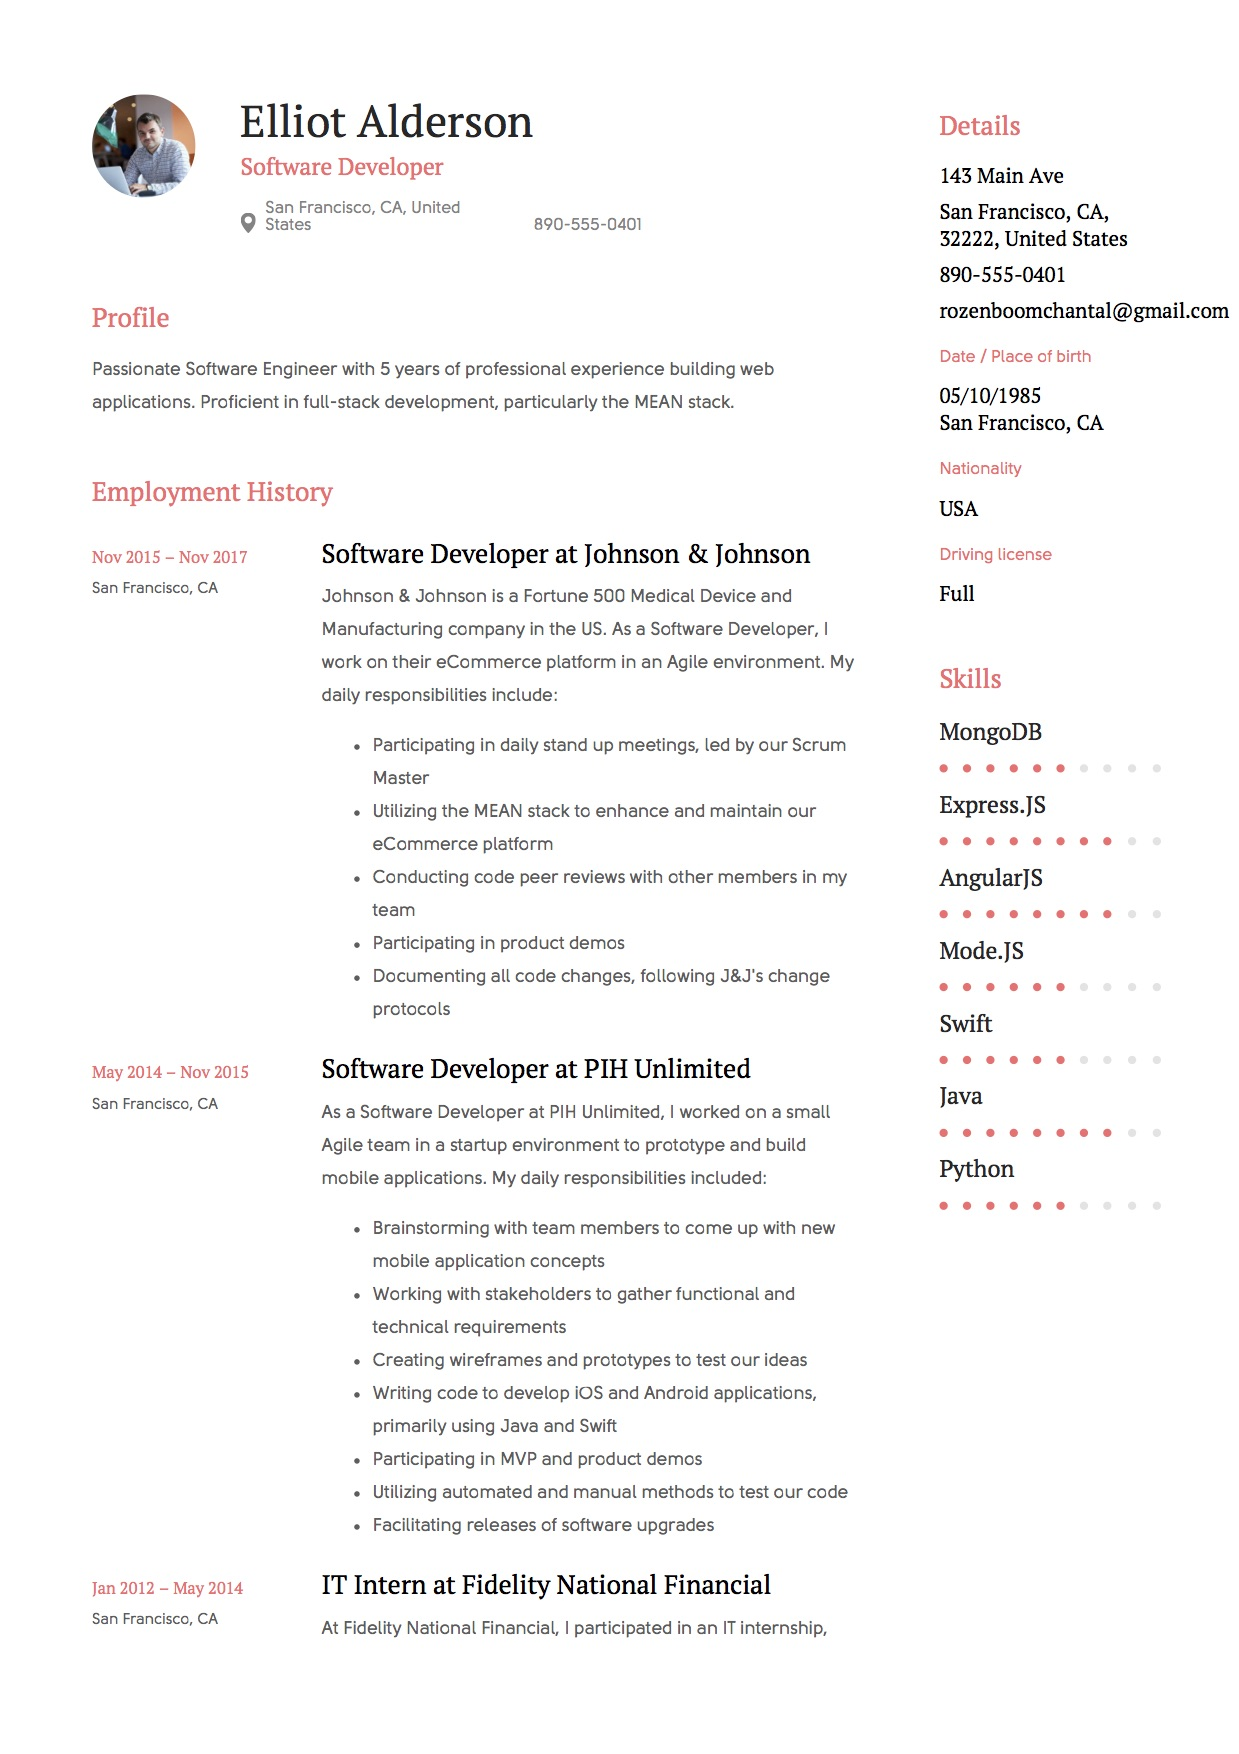 oftware developer resume example6 - Angularjs Developer Resume